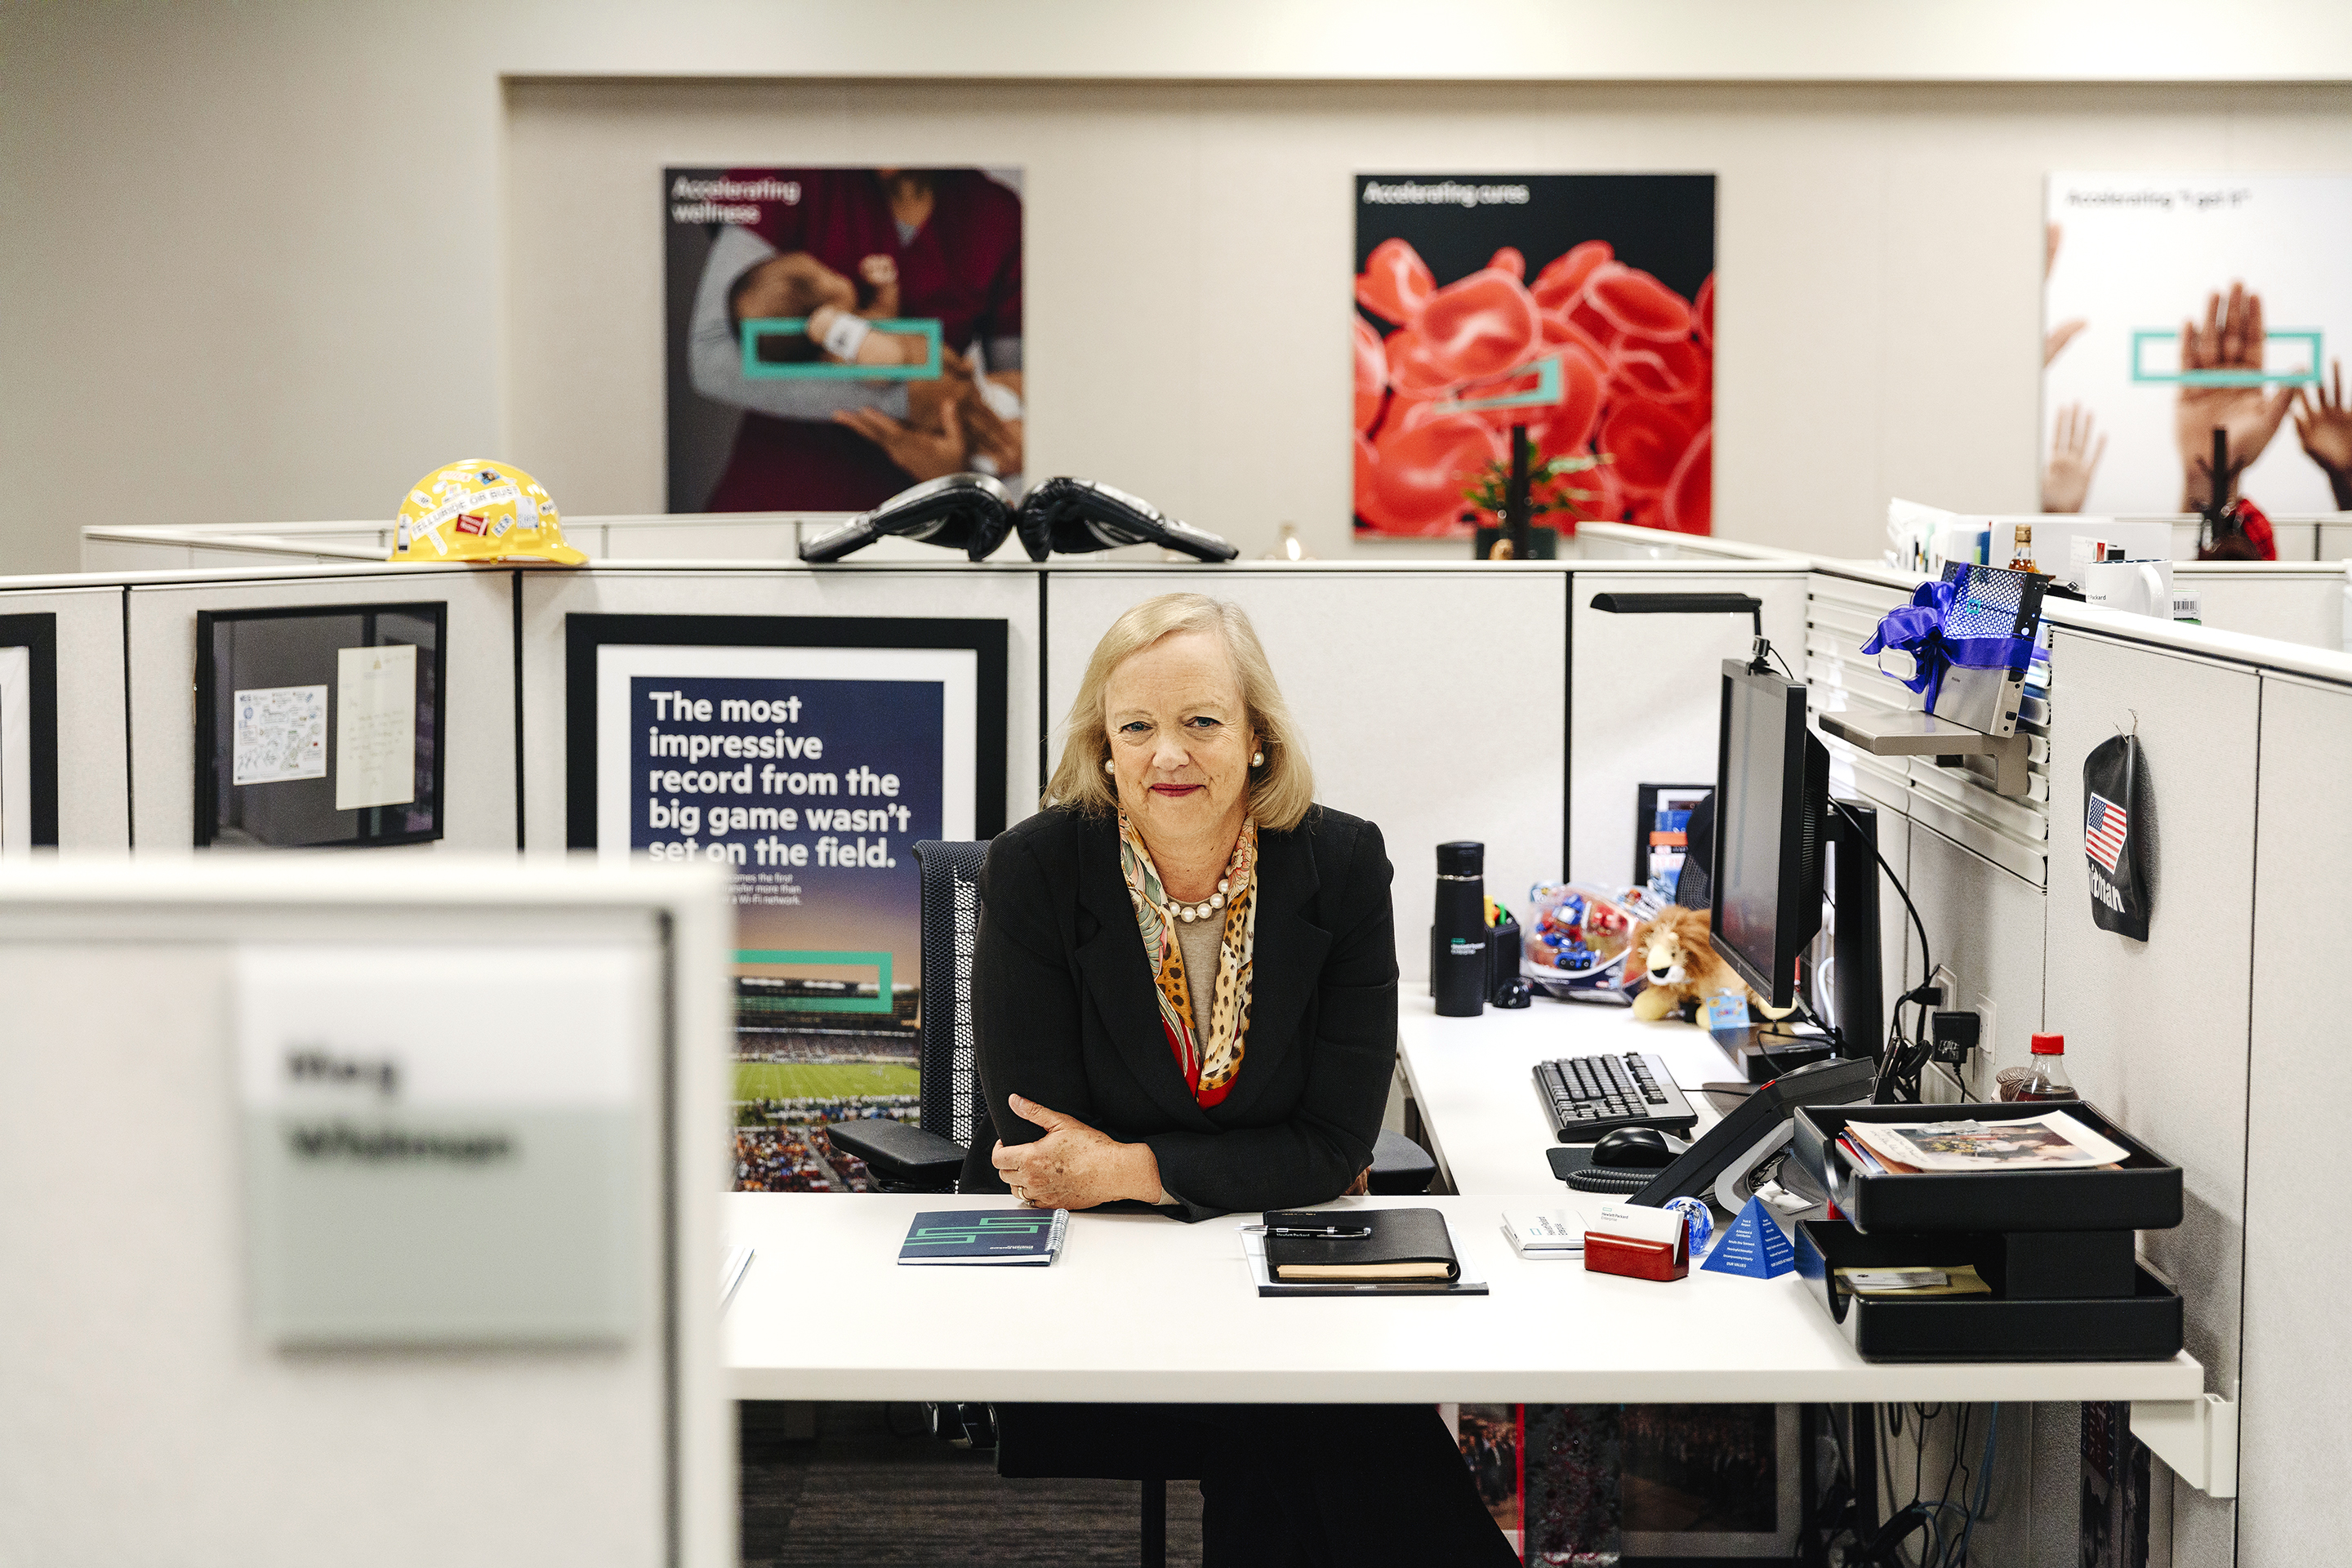 Meg Whitman, Hewlett Packard Enterprise CEO, sits at her desk at the Hewlett Packard Corporate Headquarters in Palo Alto, California September 13, 2017. Credit: Brinson+Banks